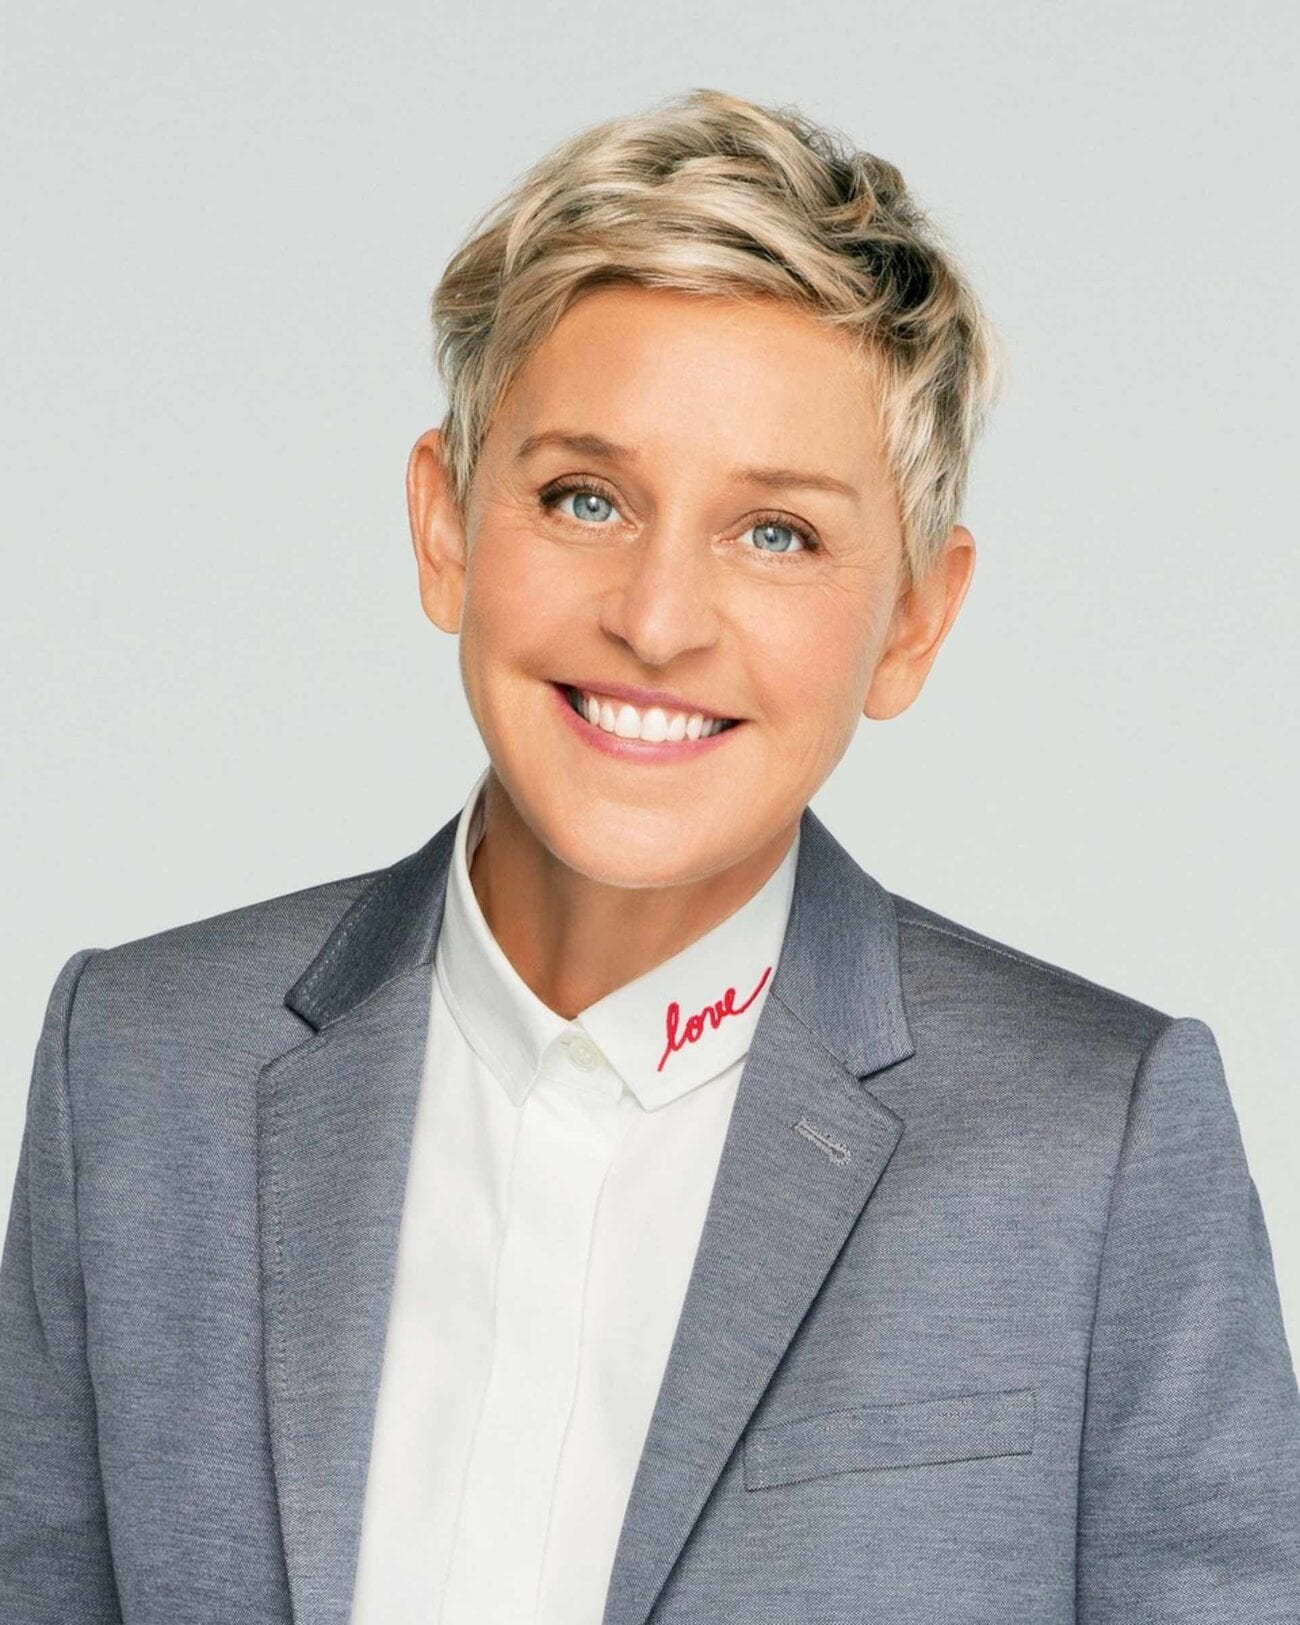 A number of celebrities have supported Ellen DeGeneres, many of whom appeared on her show. Is Ellen mean? Here's what Meghan Markle had to say.